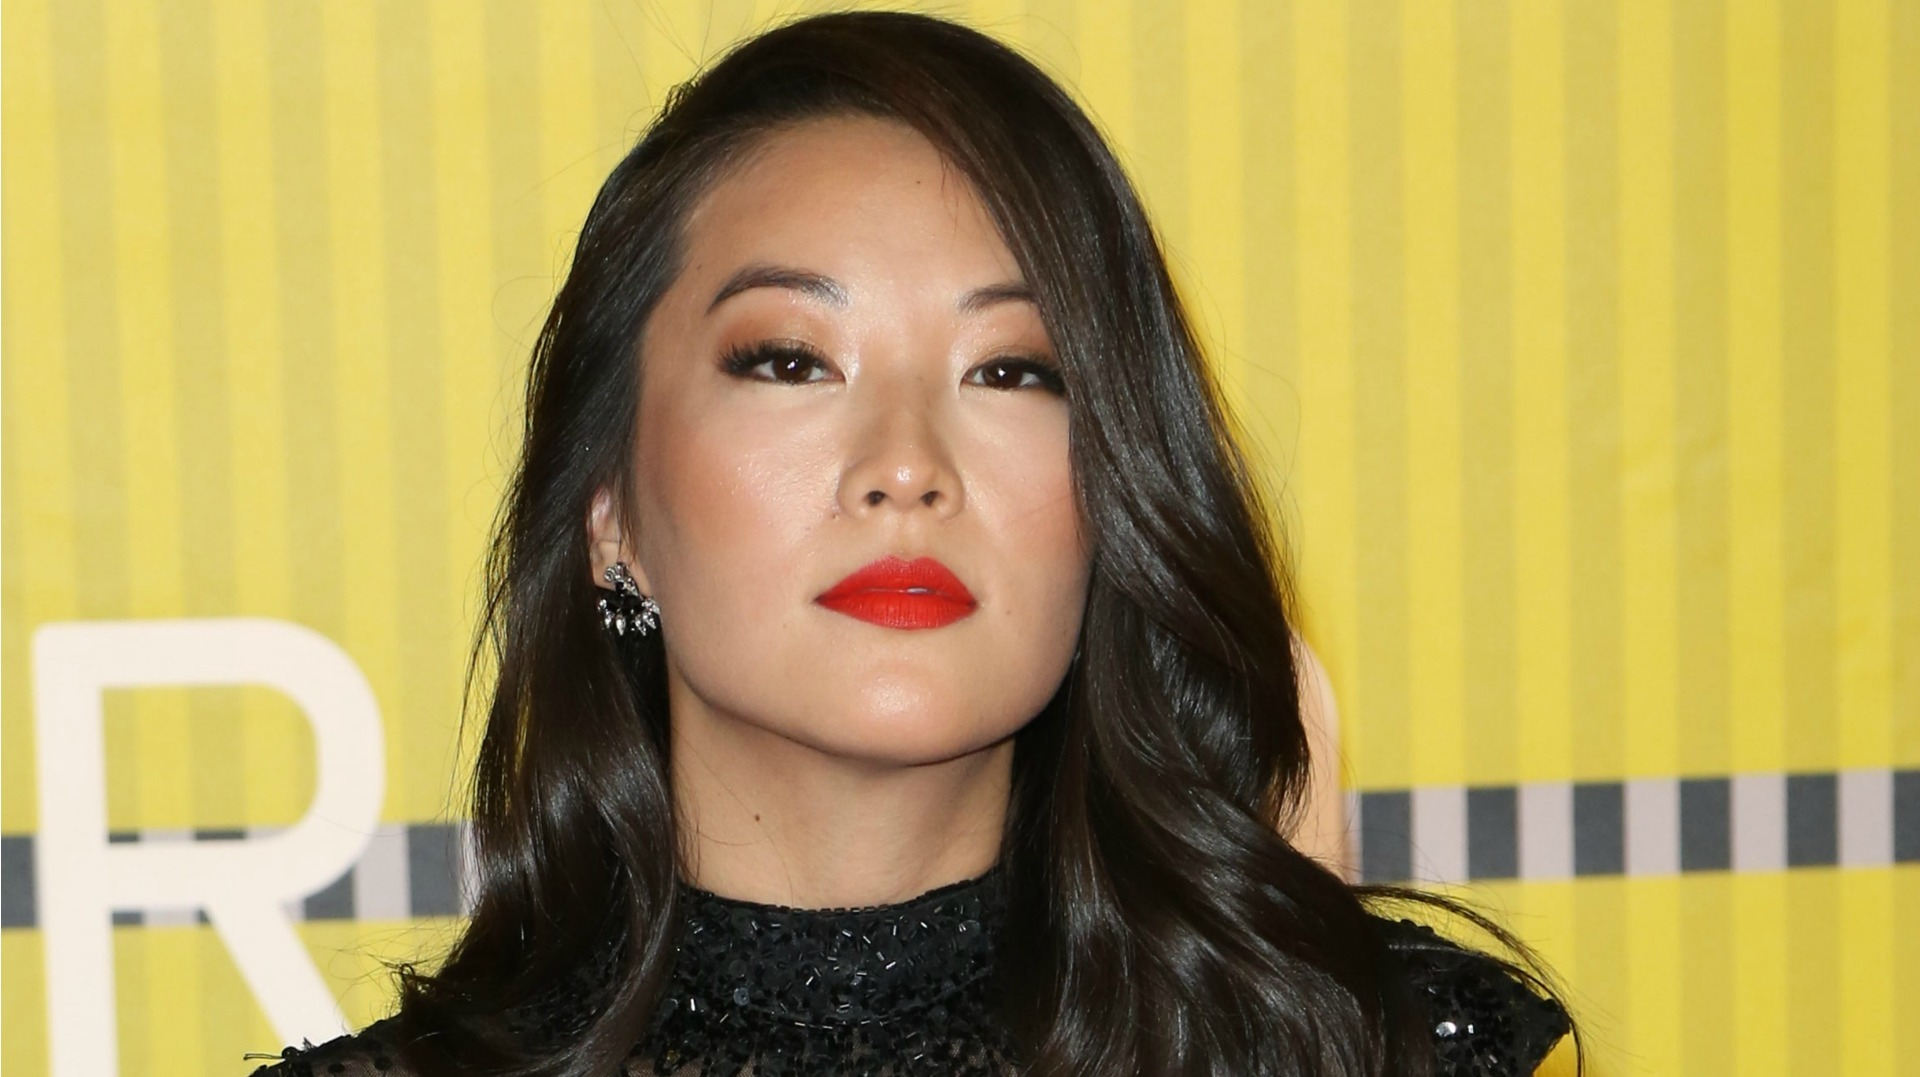 Teen Wolf's Arden Cho calls out another whitewashed movie